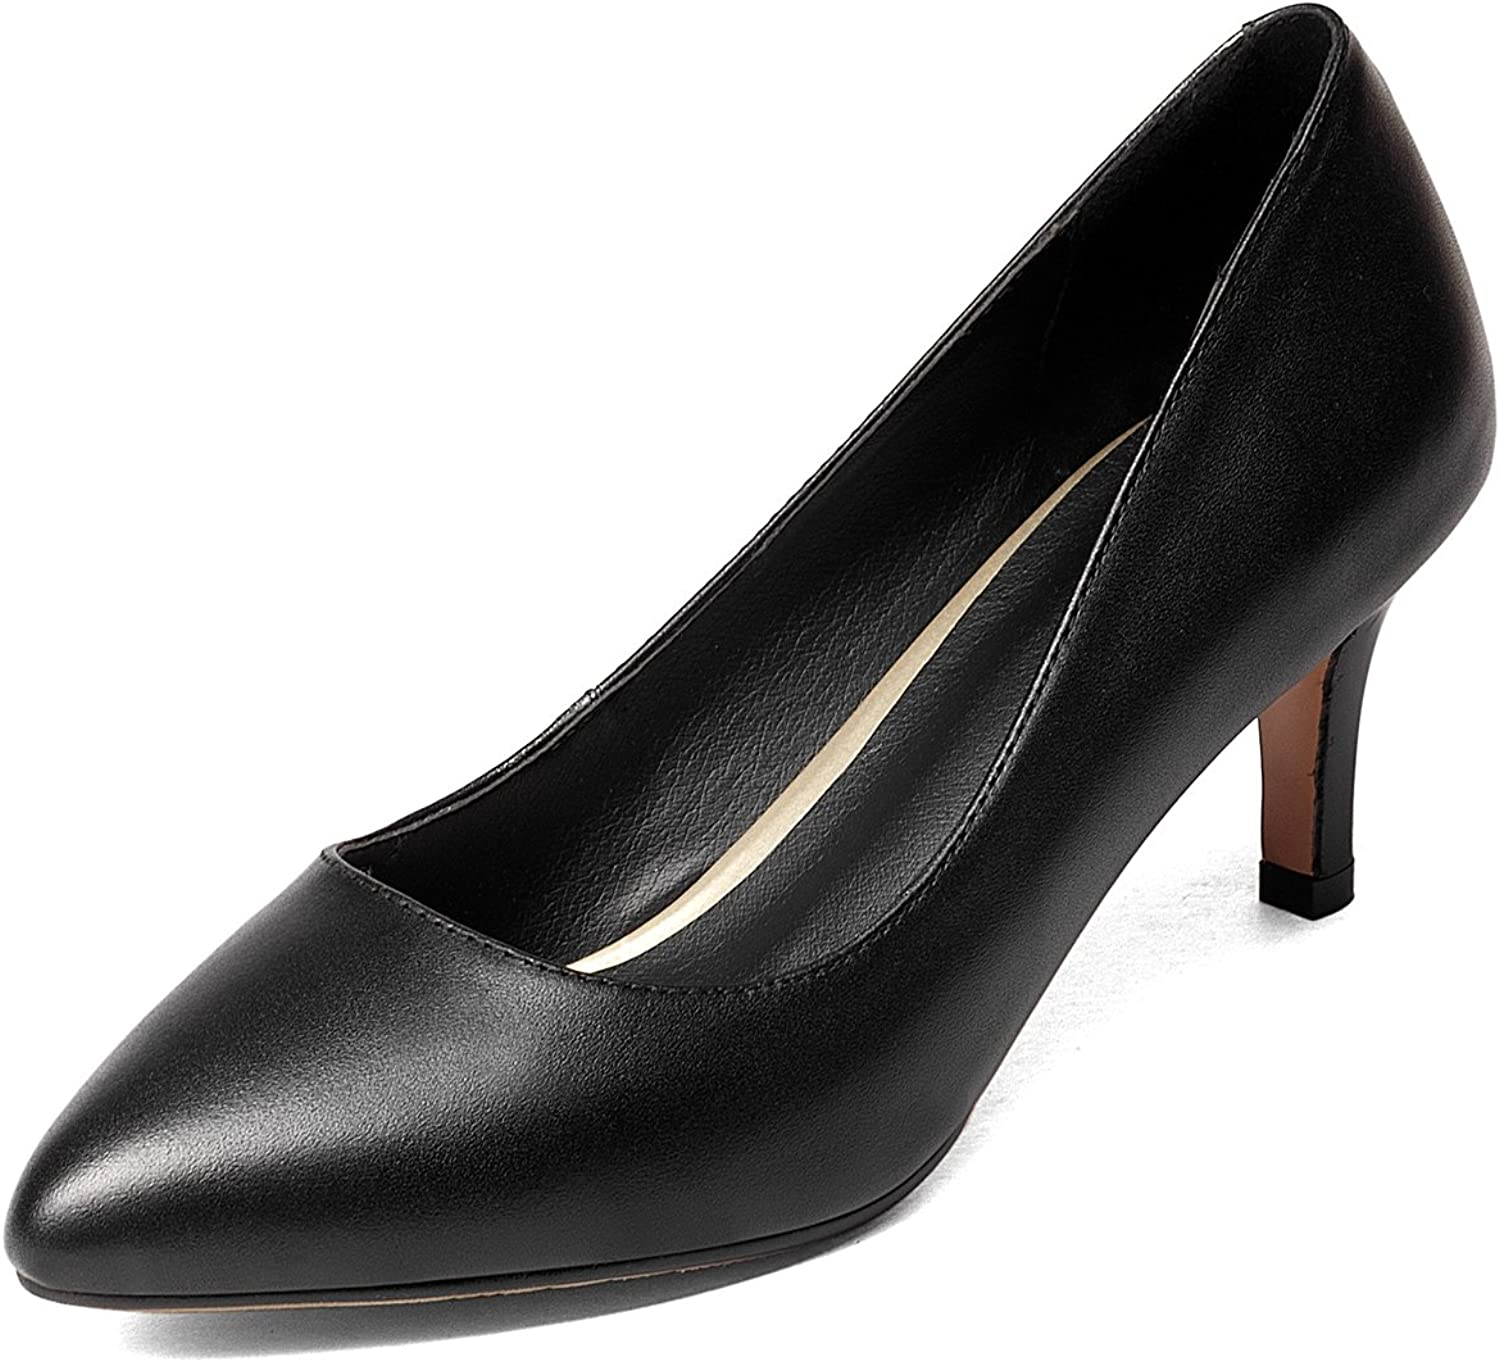 DoraTasia Women's Mid Heels for Women Classic Slip on Pointed Toes Pumps shoes